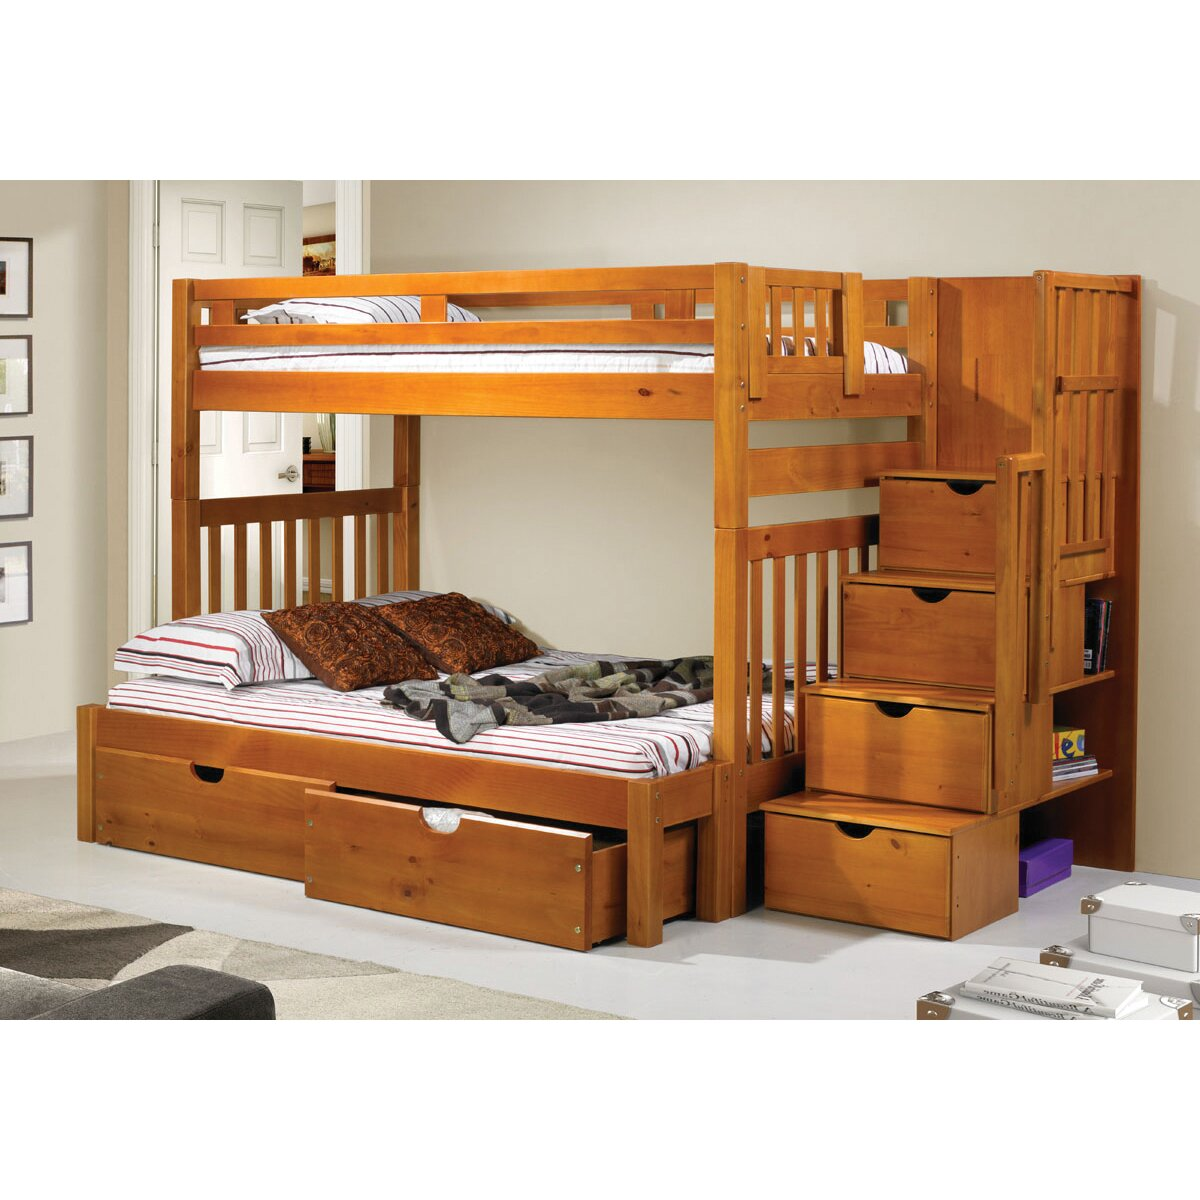 Donco kids stairway loft bunk bed with storage drawers wayfair - Bunkbeds with drawers ...